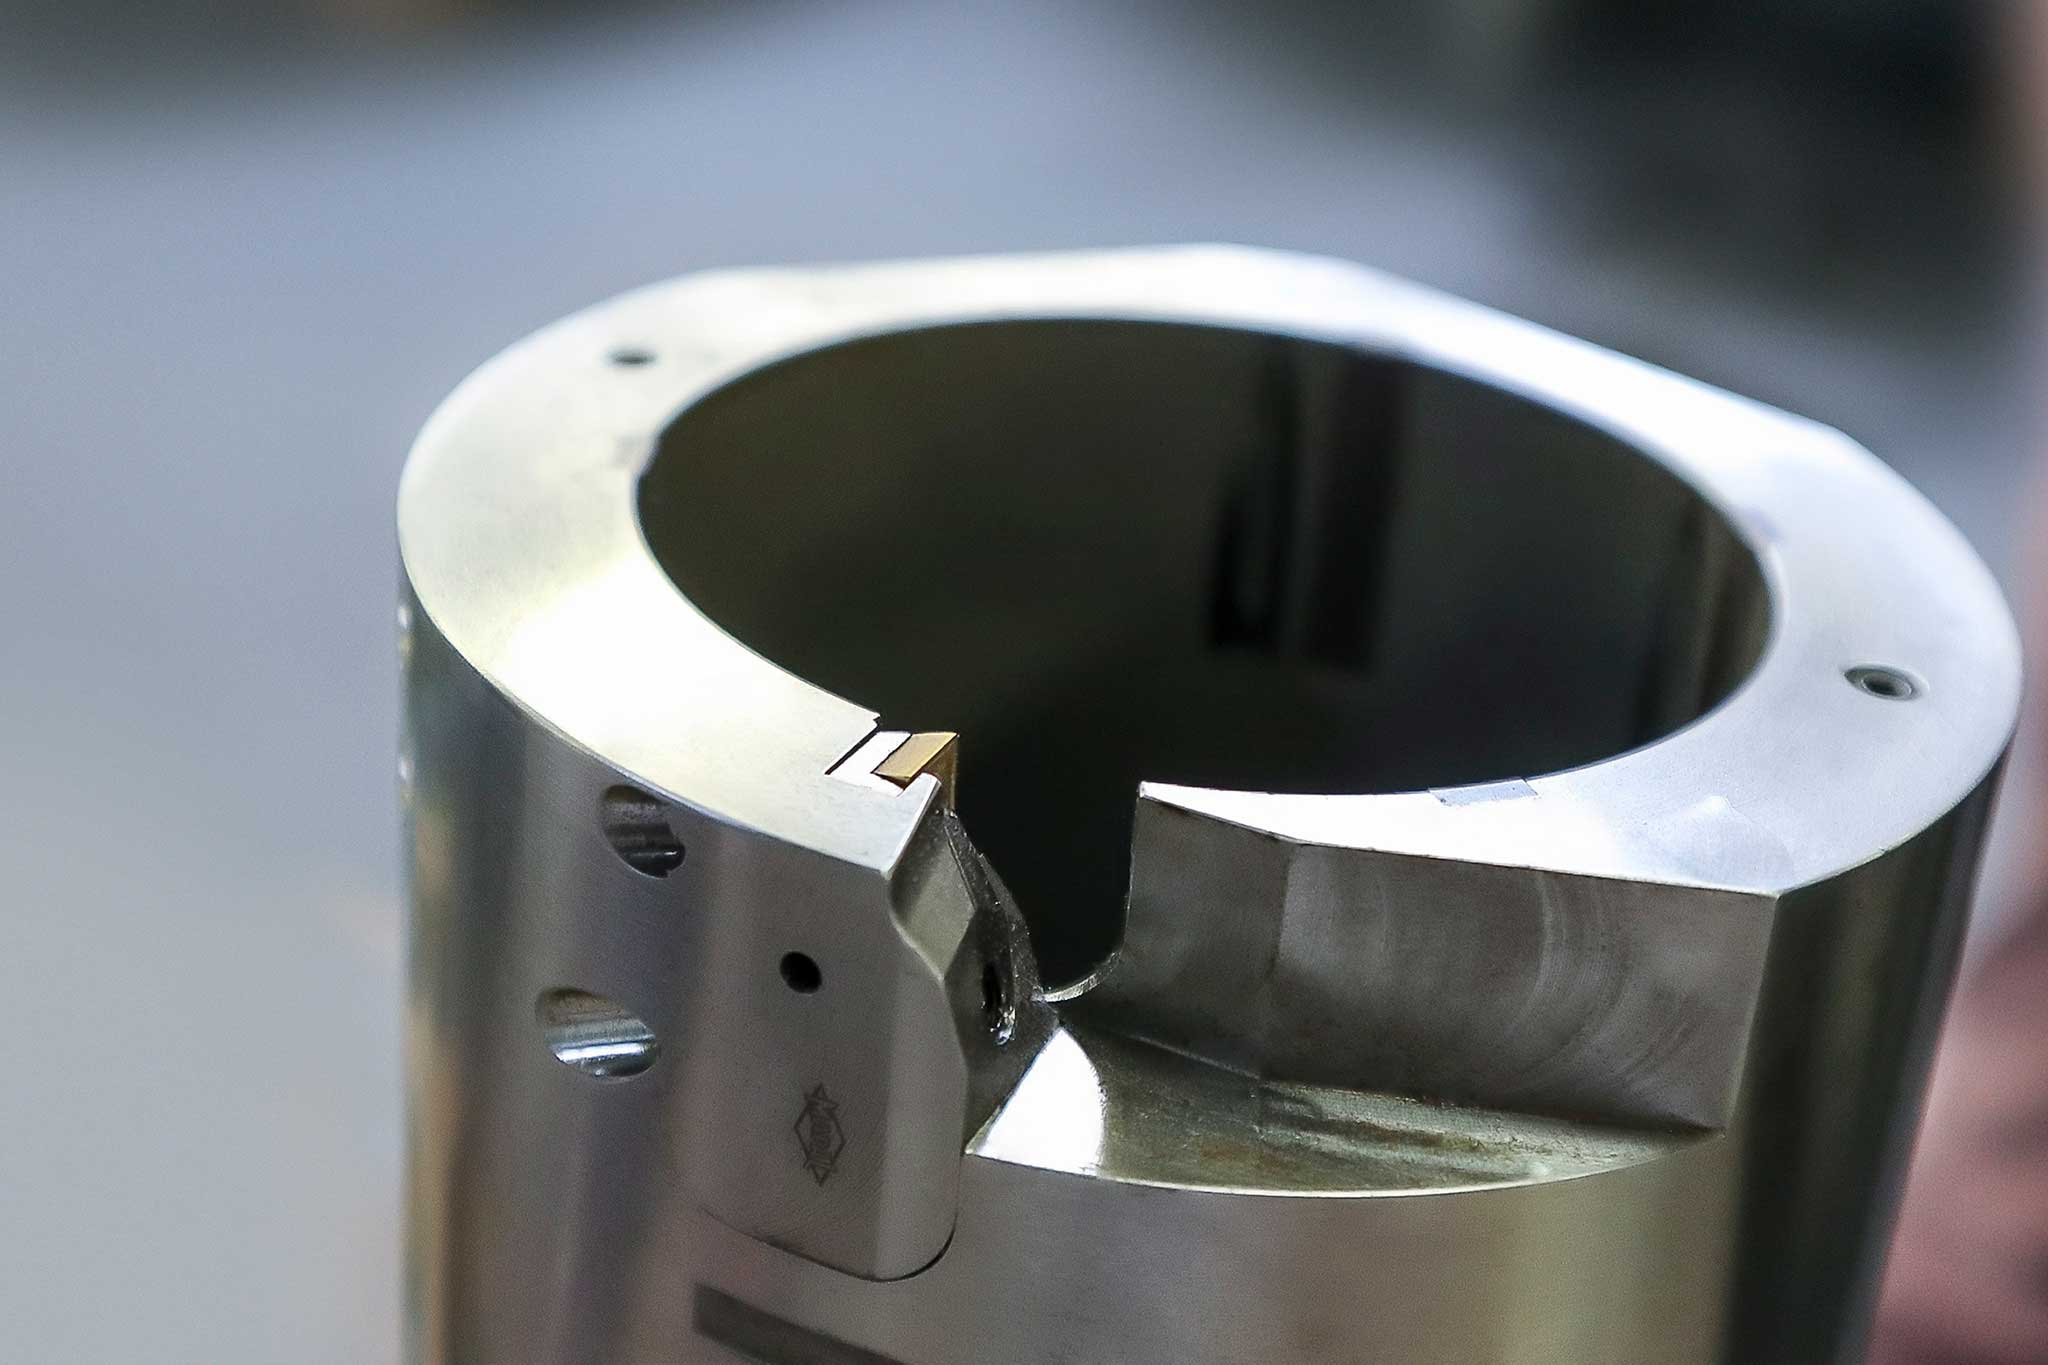 The image shows the upper area of the external reamer in detail. There the cutting edge is placed in the EA system.